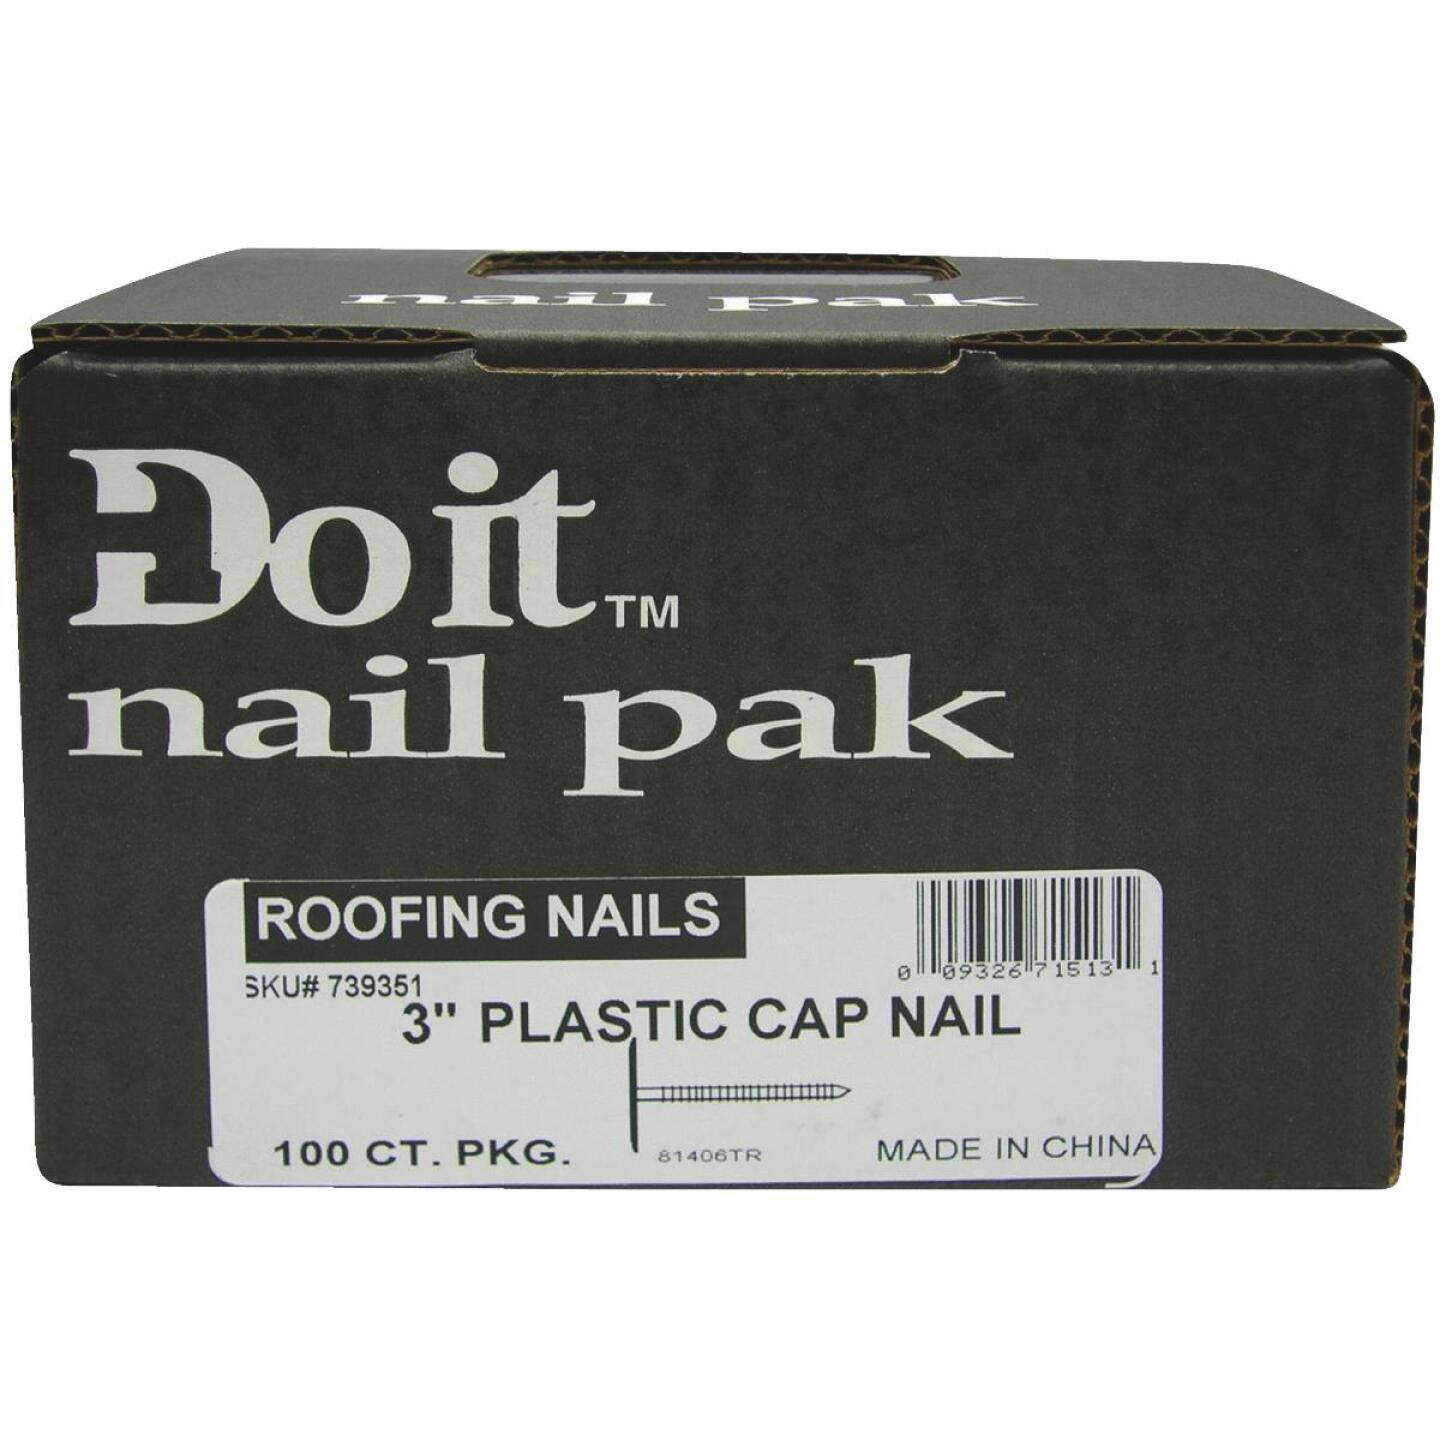 Do it 1 In. 12 ga Electrogalvanized Cap Nails (200 Ct., 1 Lb.) Image 2